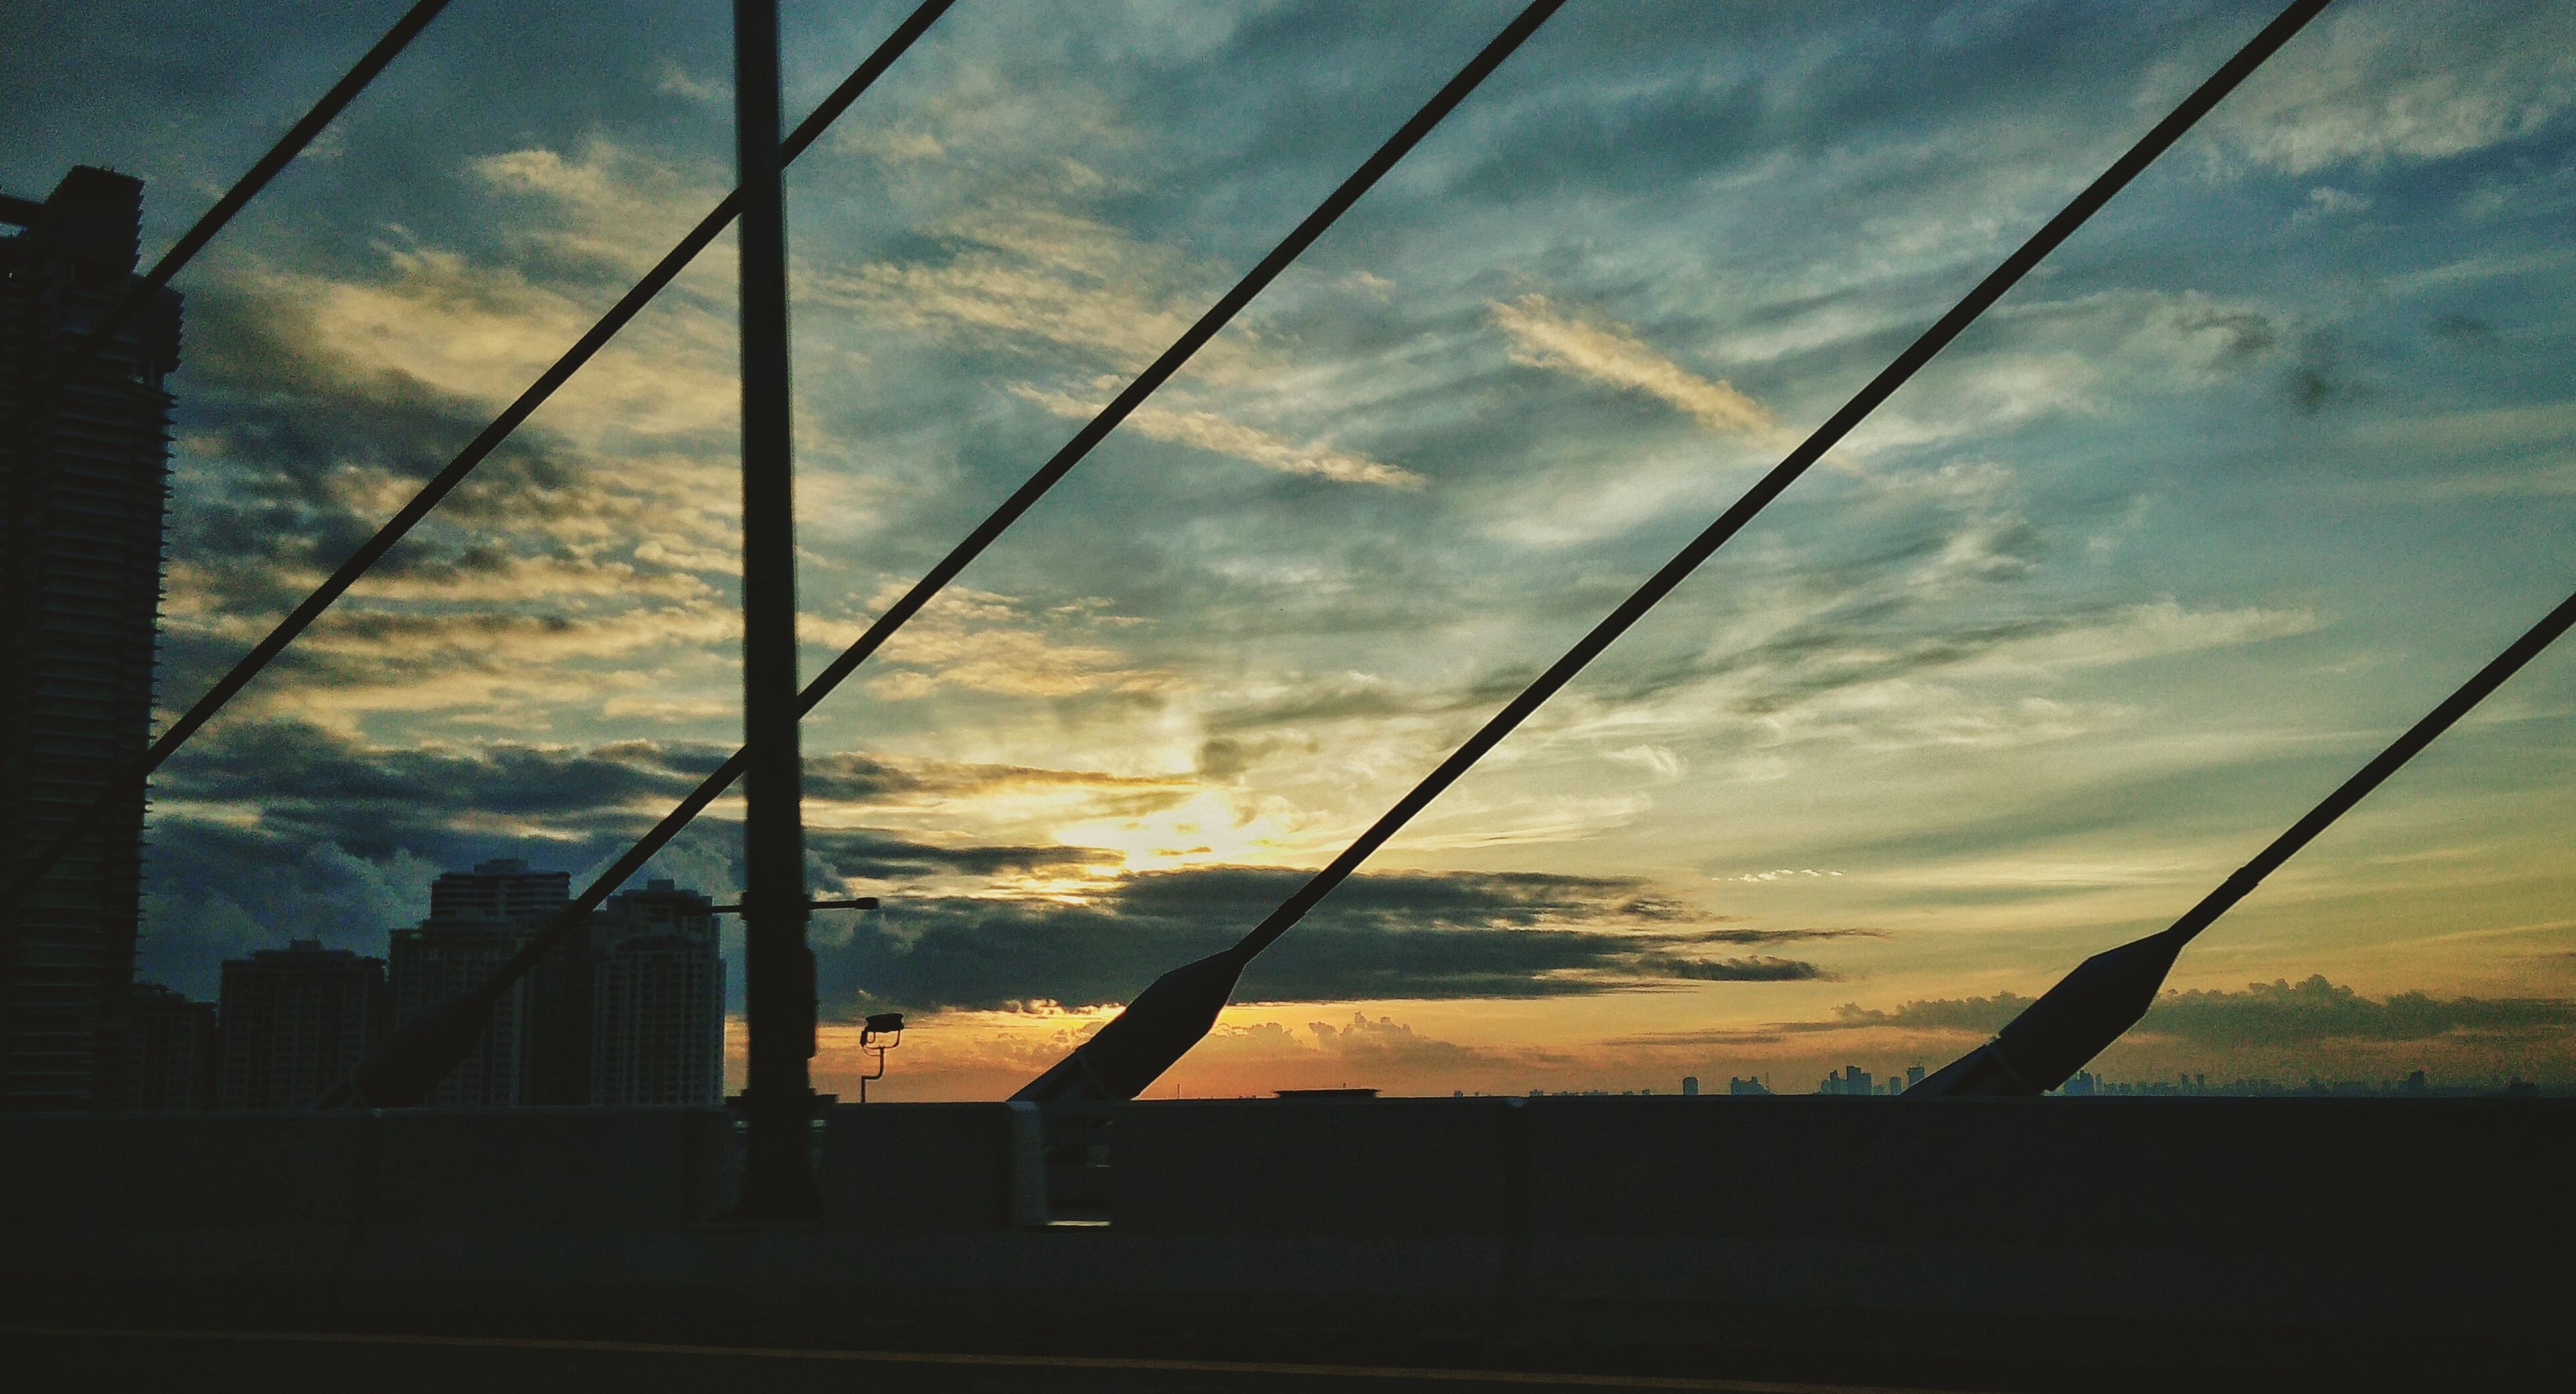 sky, sunset, cloud - sky, built structure, architecture, low angle view, connection, power line, cloud, cable, cloudy, orange color, no people, outdoors, nature, power supply, beauty in nature, weather